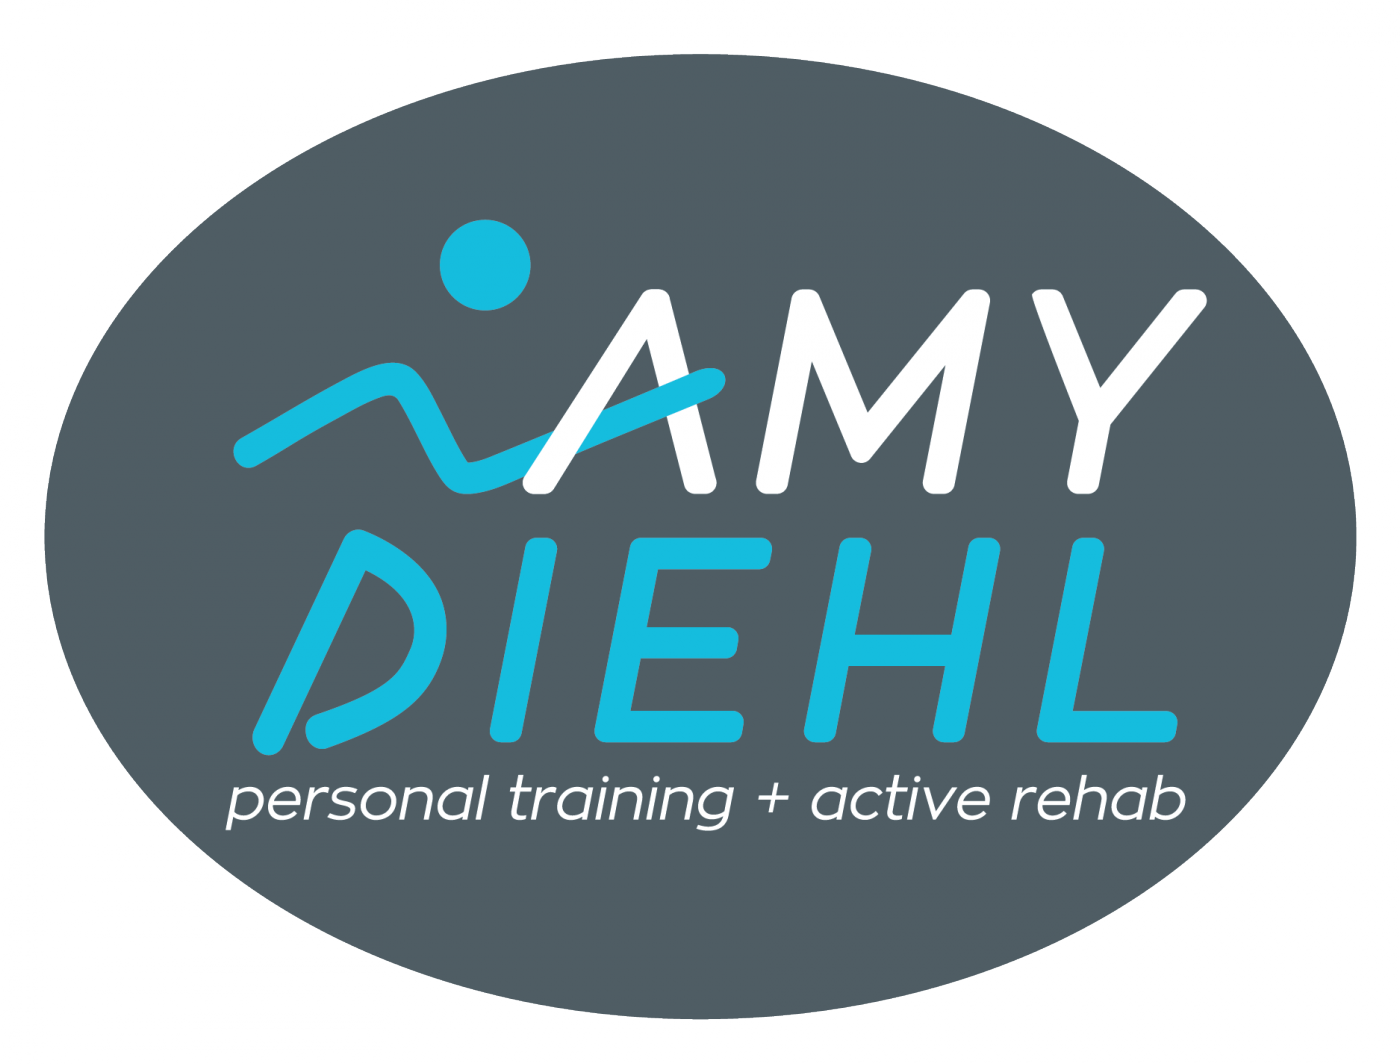 Amy Diehl personal training logo